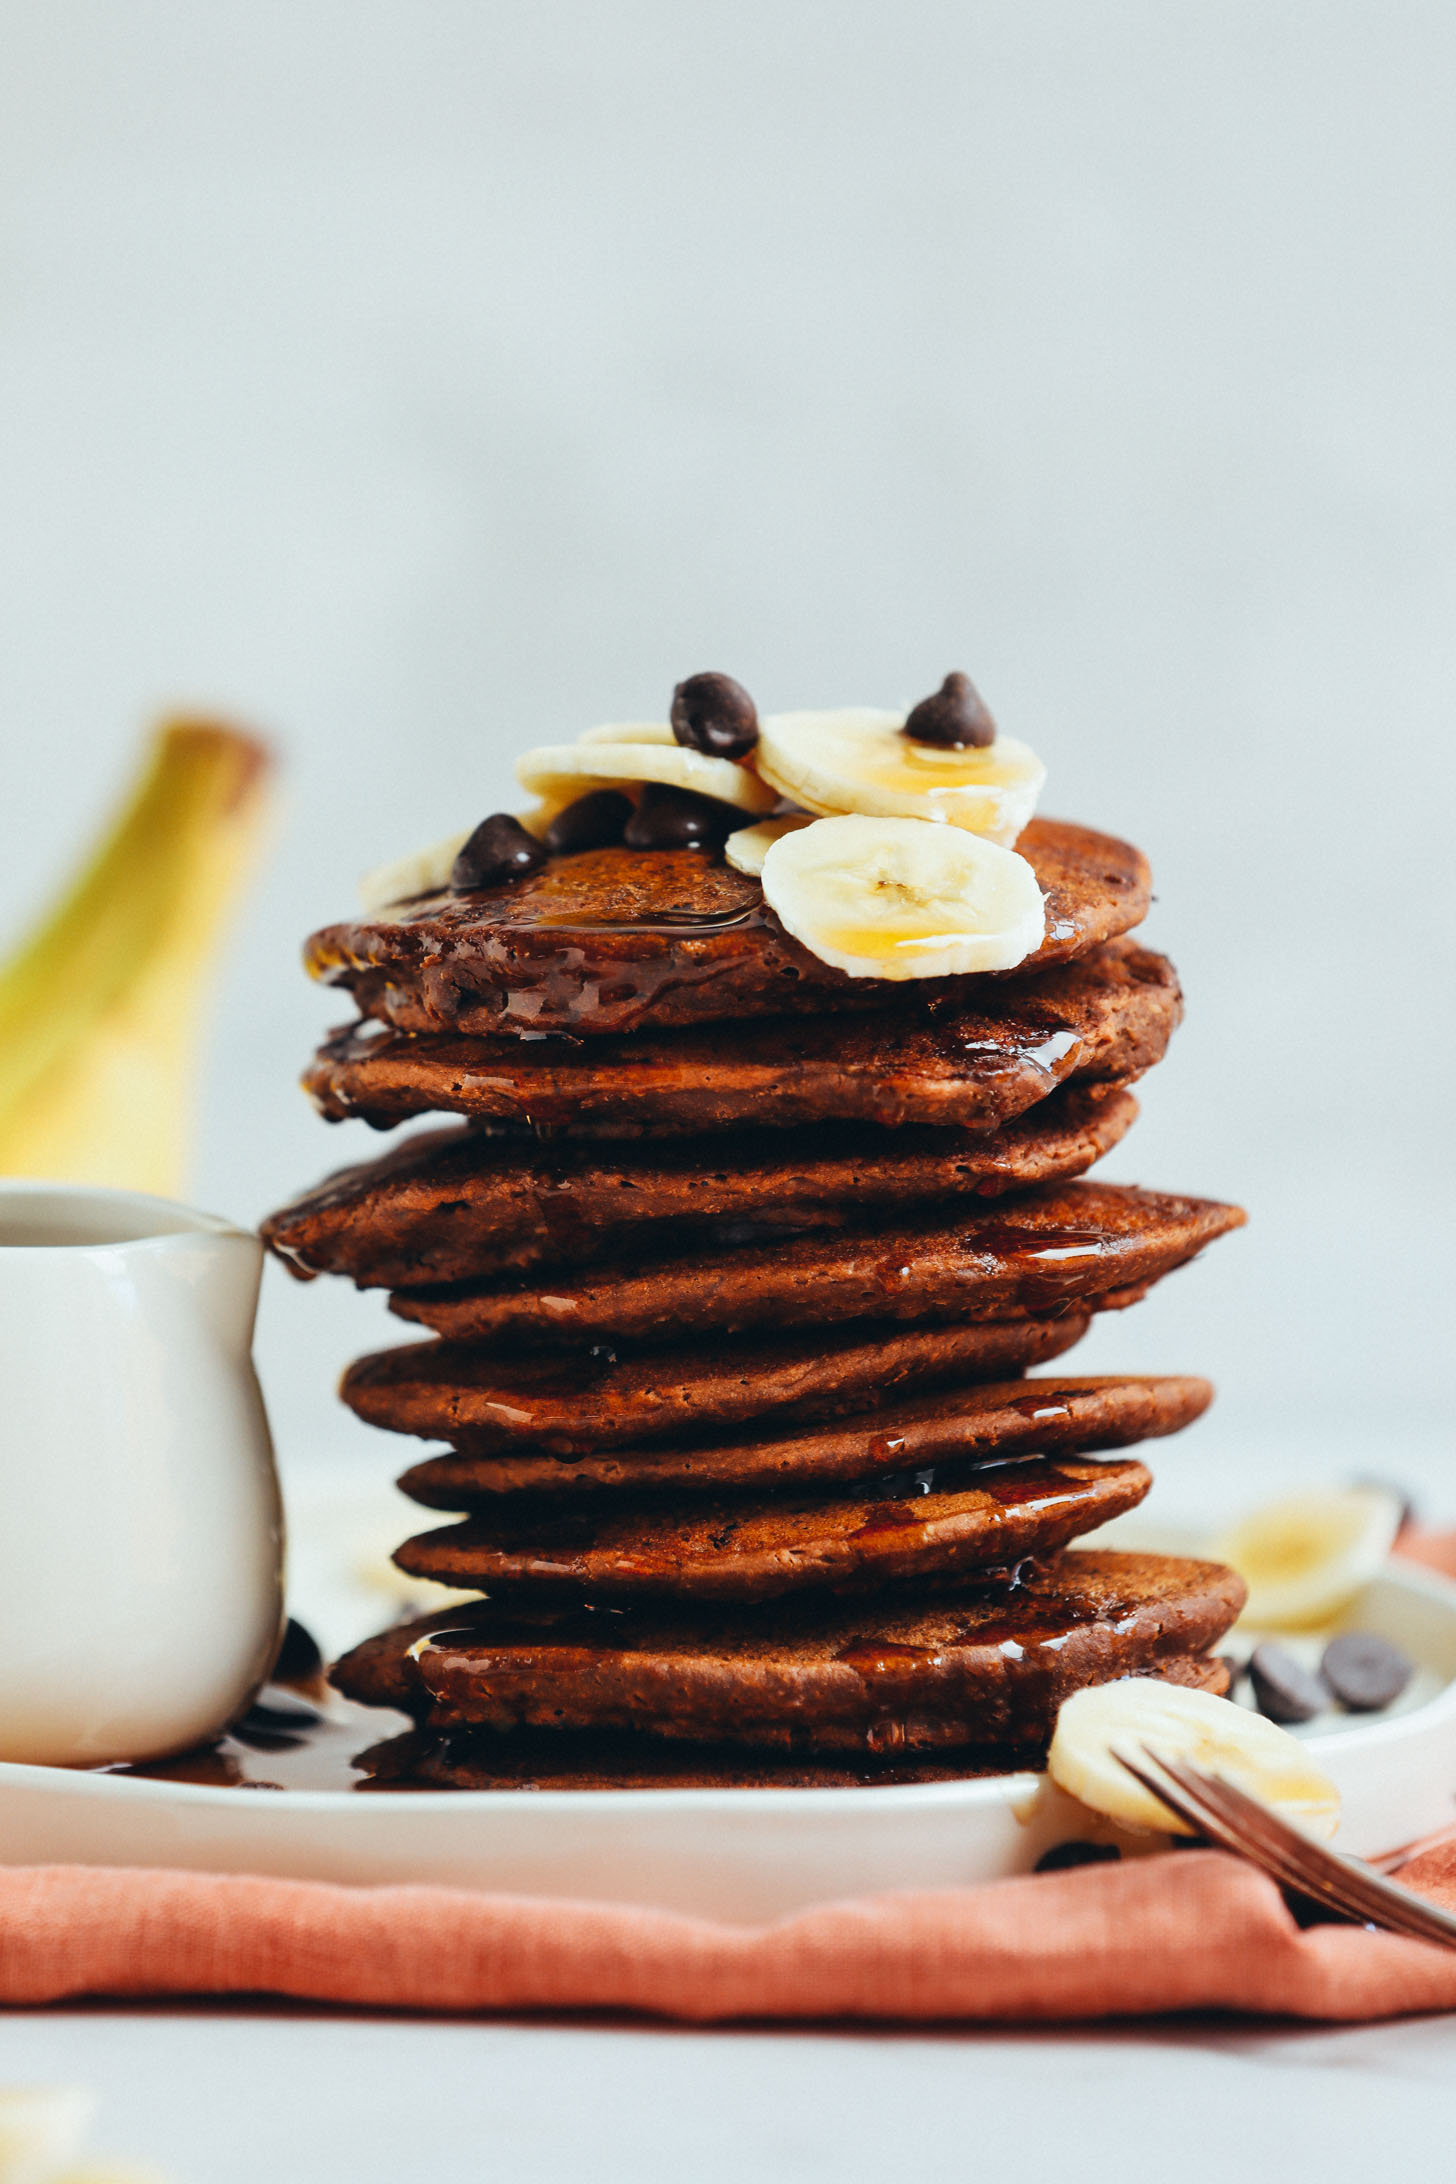 Stack of Amazing Vegan Chocolate Chocolate Chip Pancakes topped with fresh banana